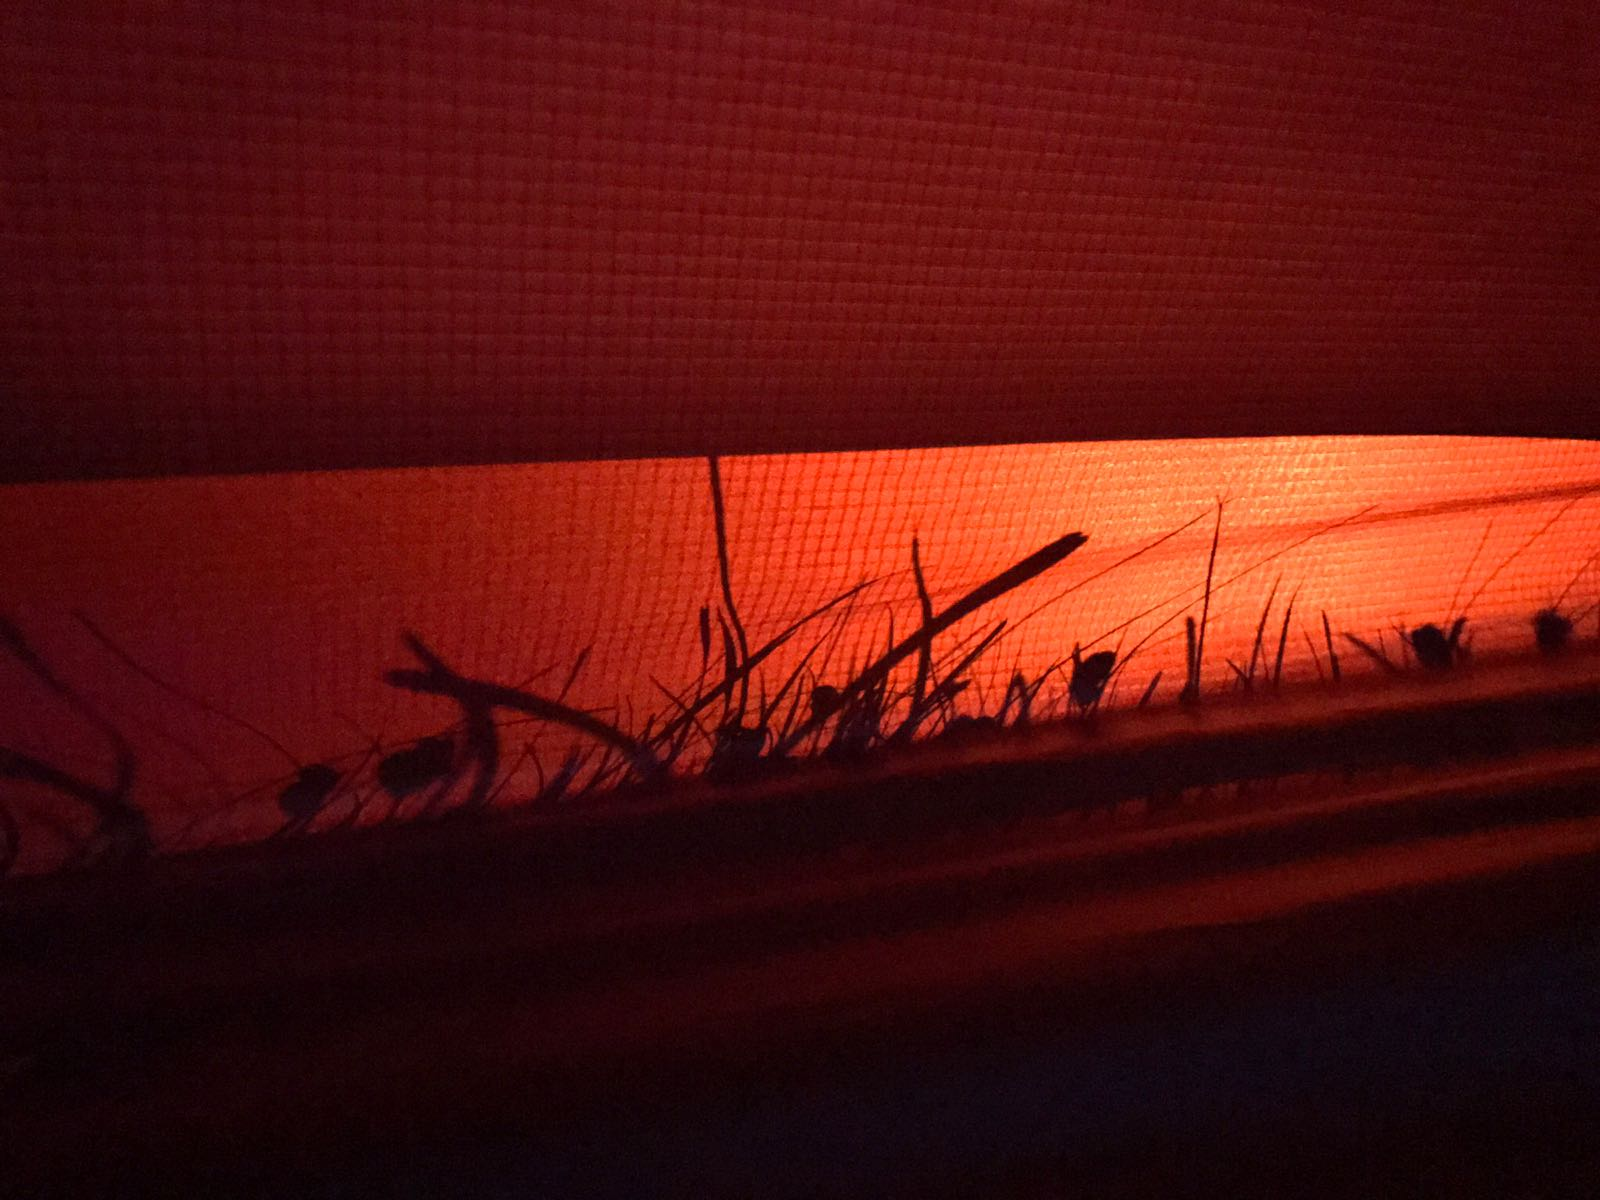 Silhouette of grass through a red tent